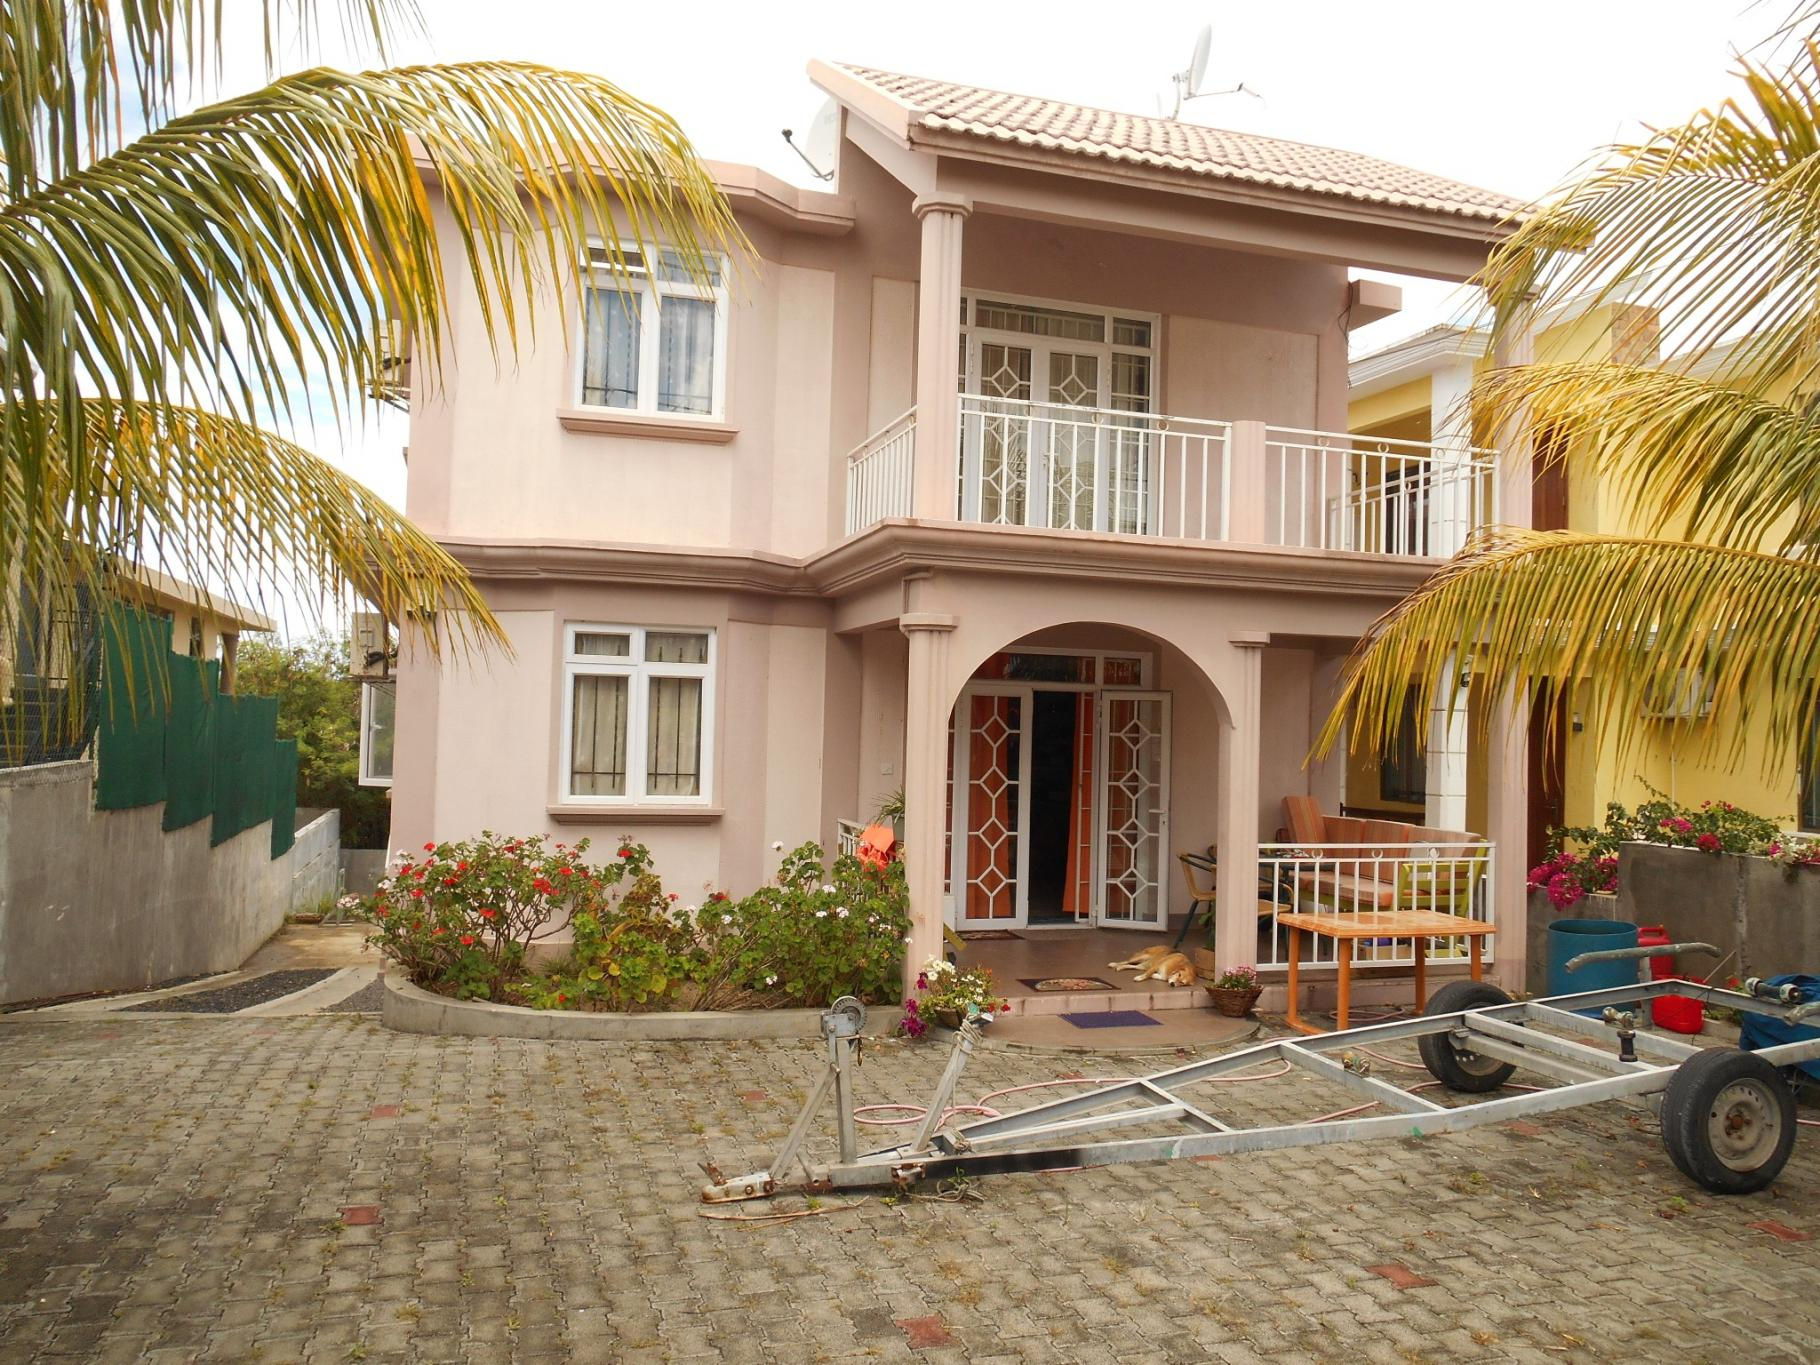 FOR SALE – Nice house of 218 m2 in Pereybère